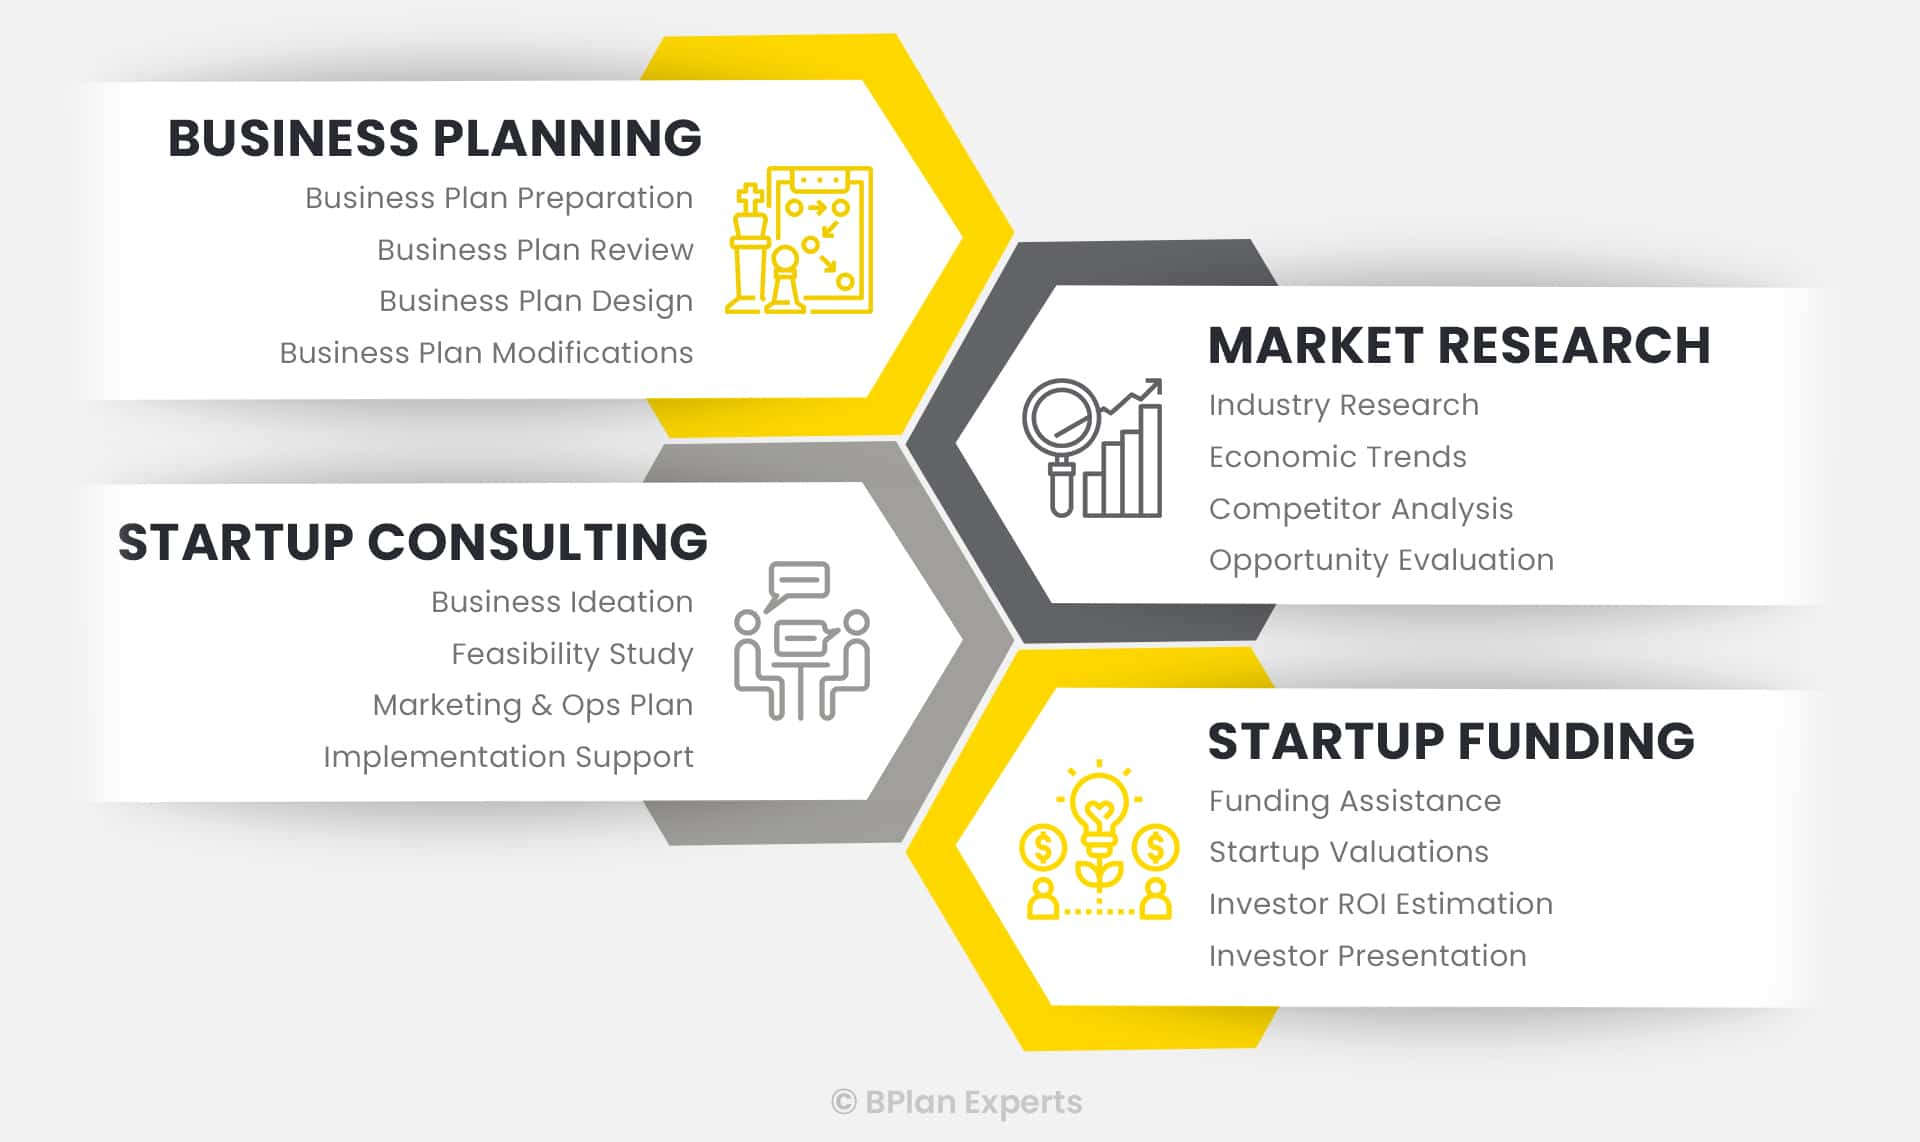 Business Planning Services Overview